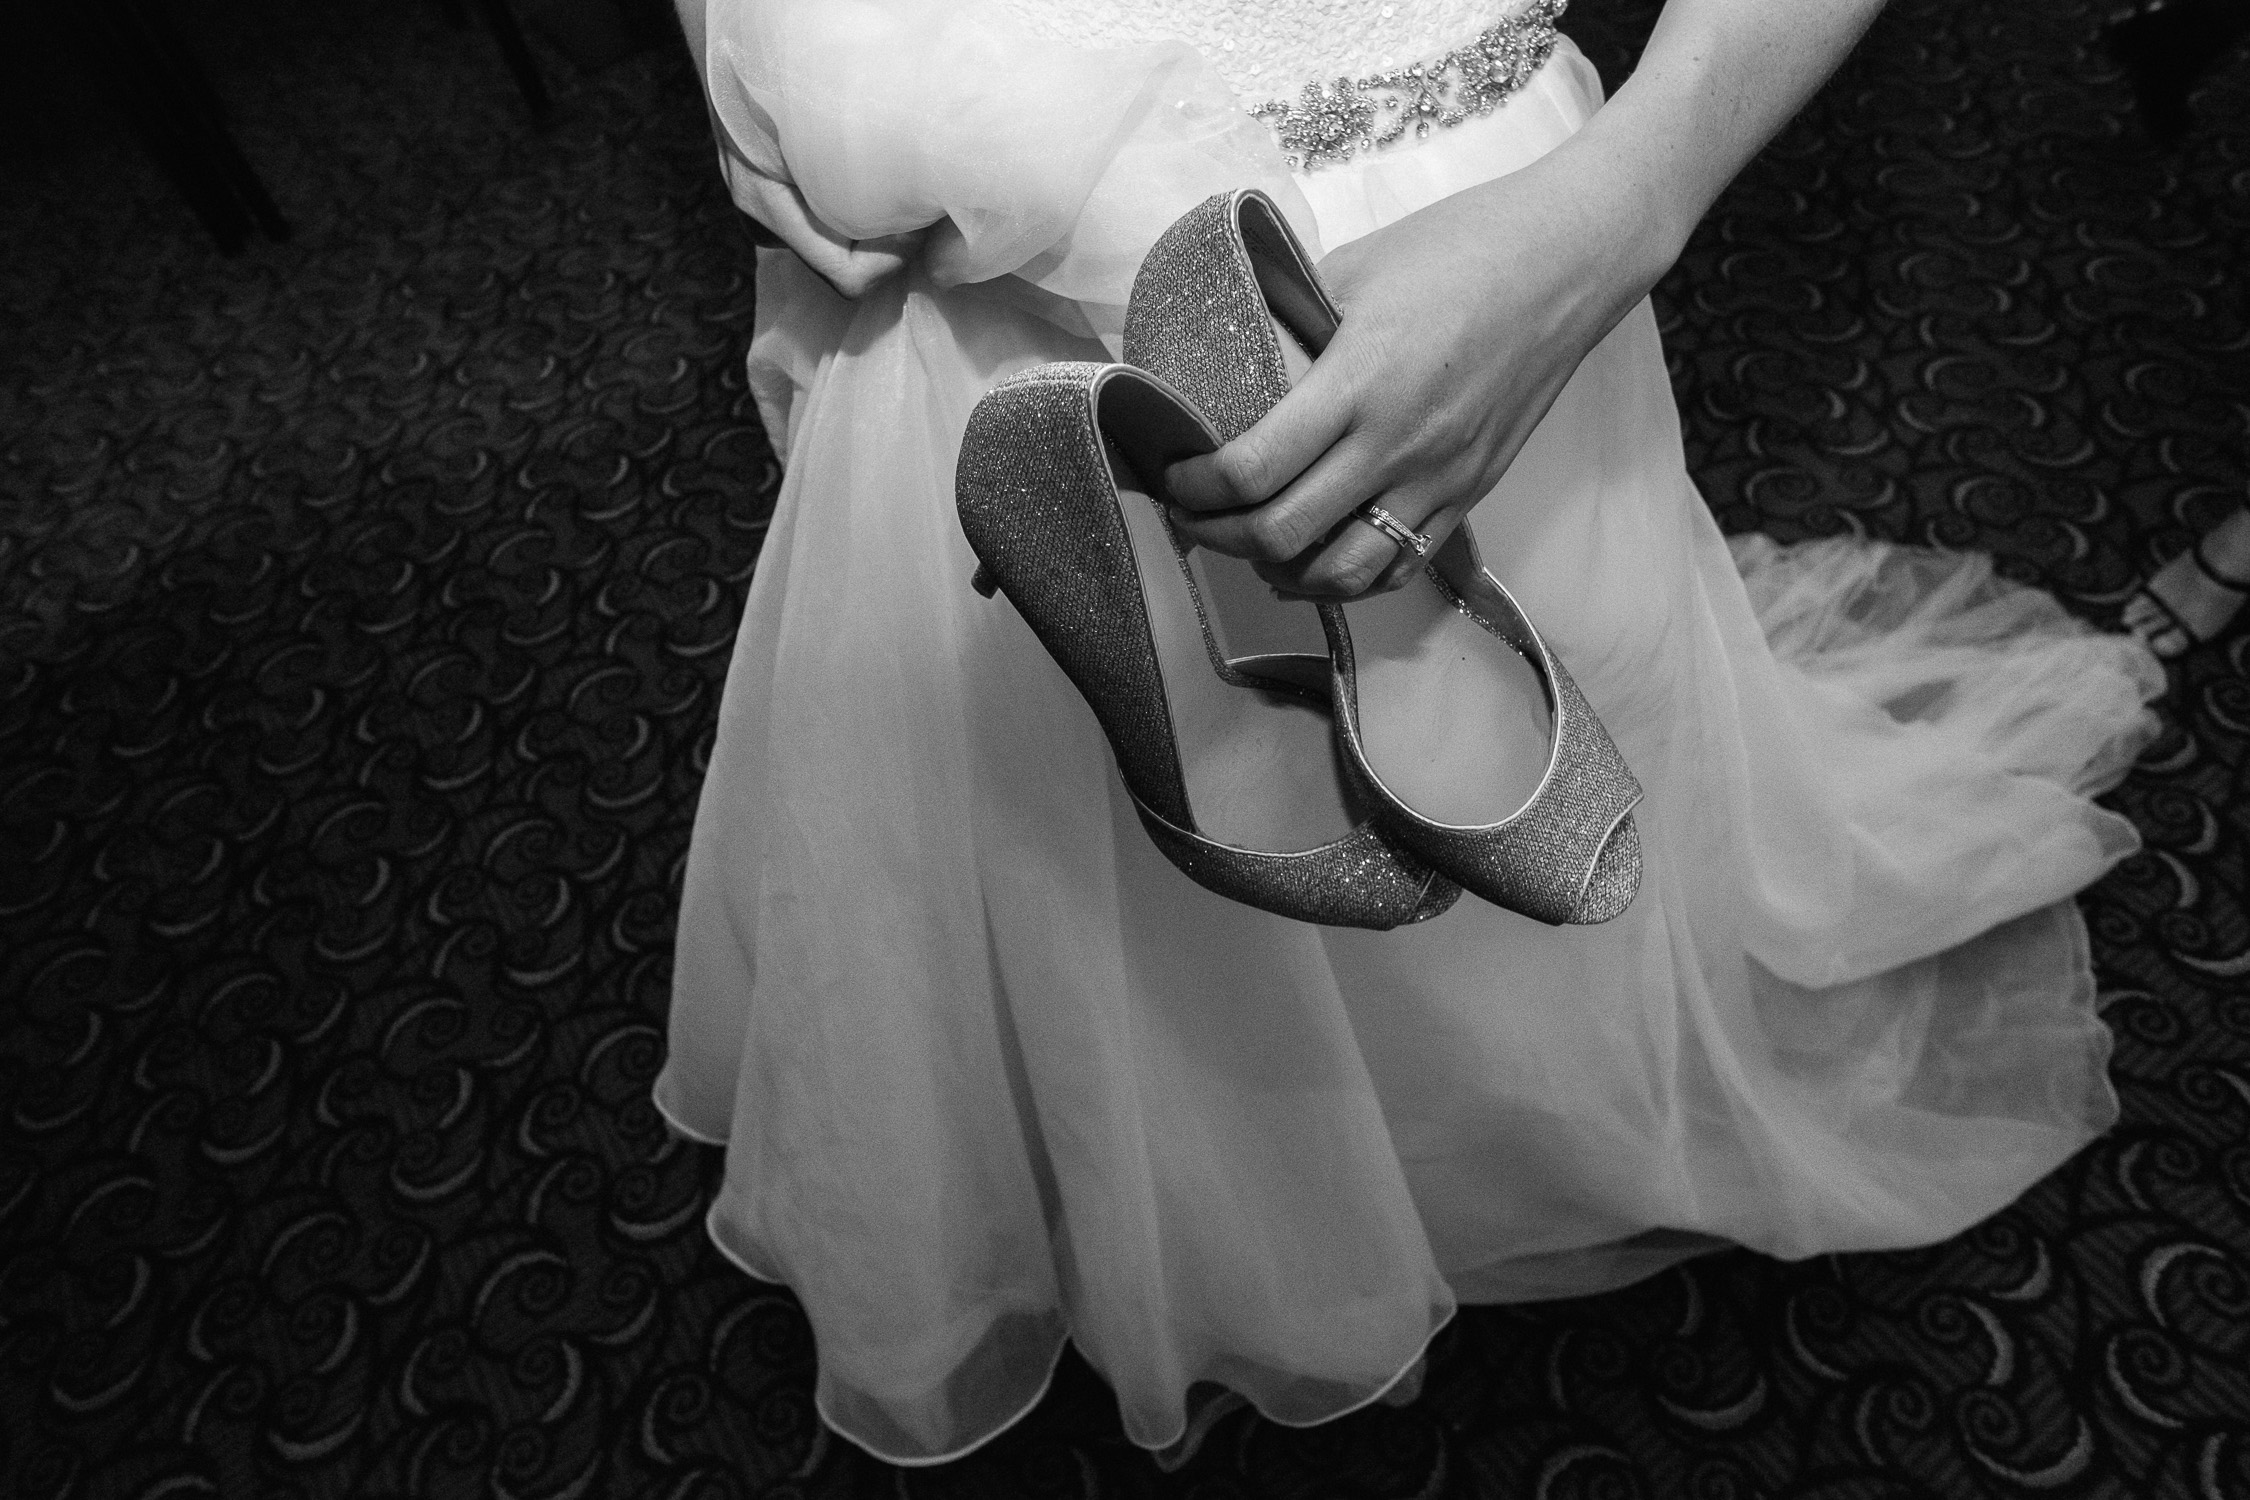 Lynsey and Kai's Melbourne wedding - bride holding her glittery high heeled shoes at wedding reception at the Marriott Hotel